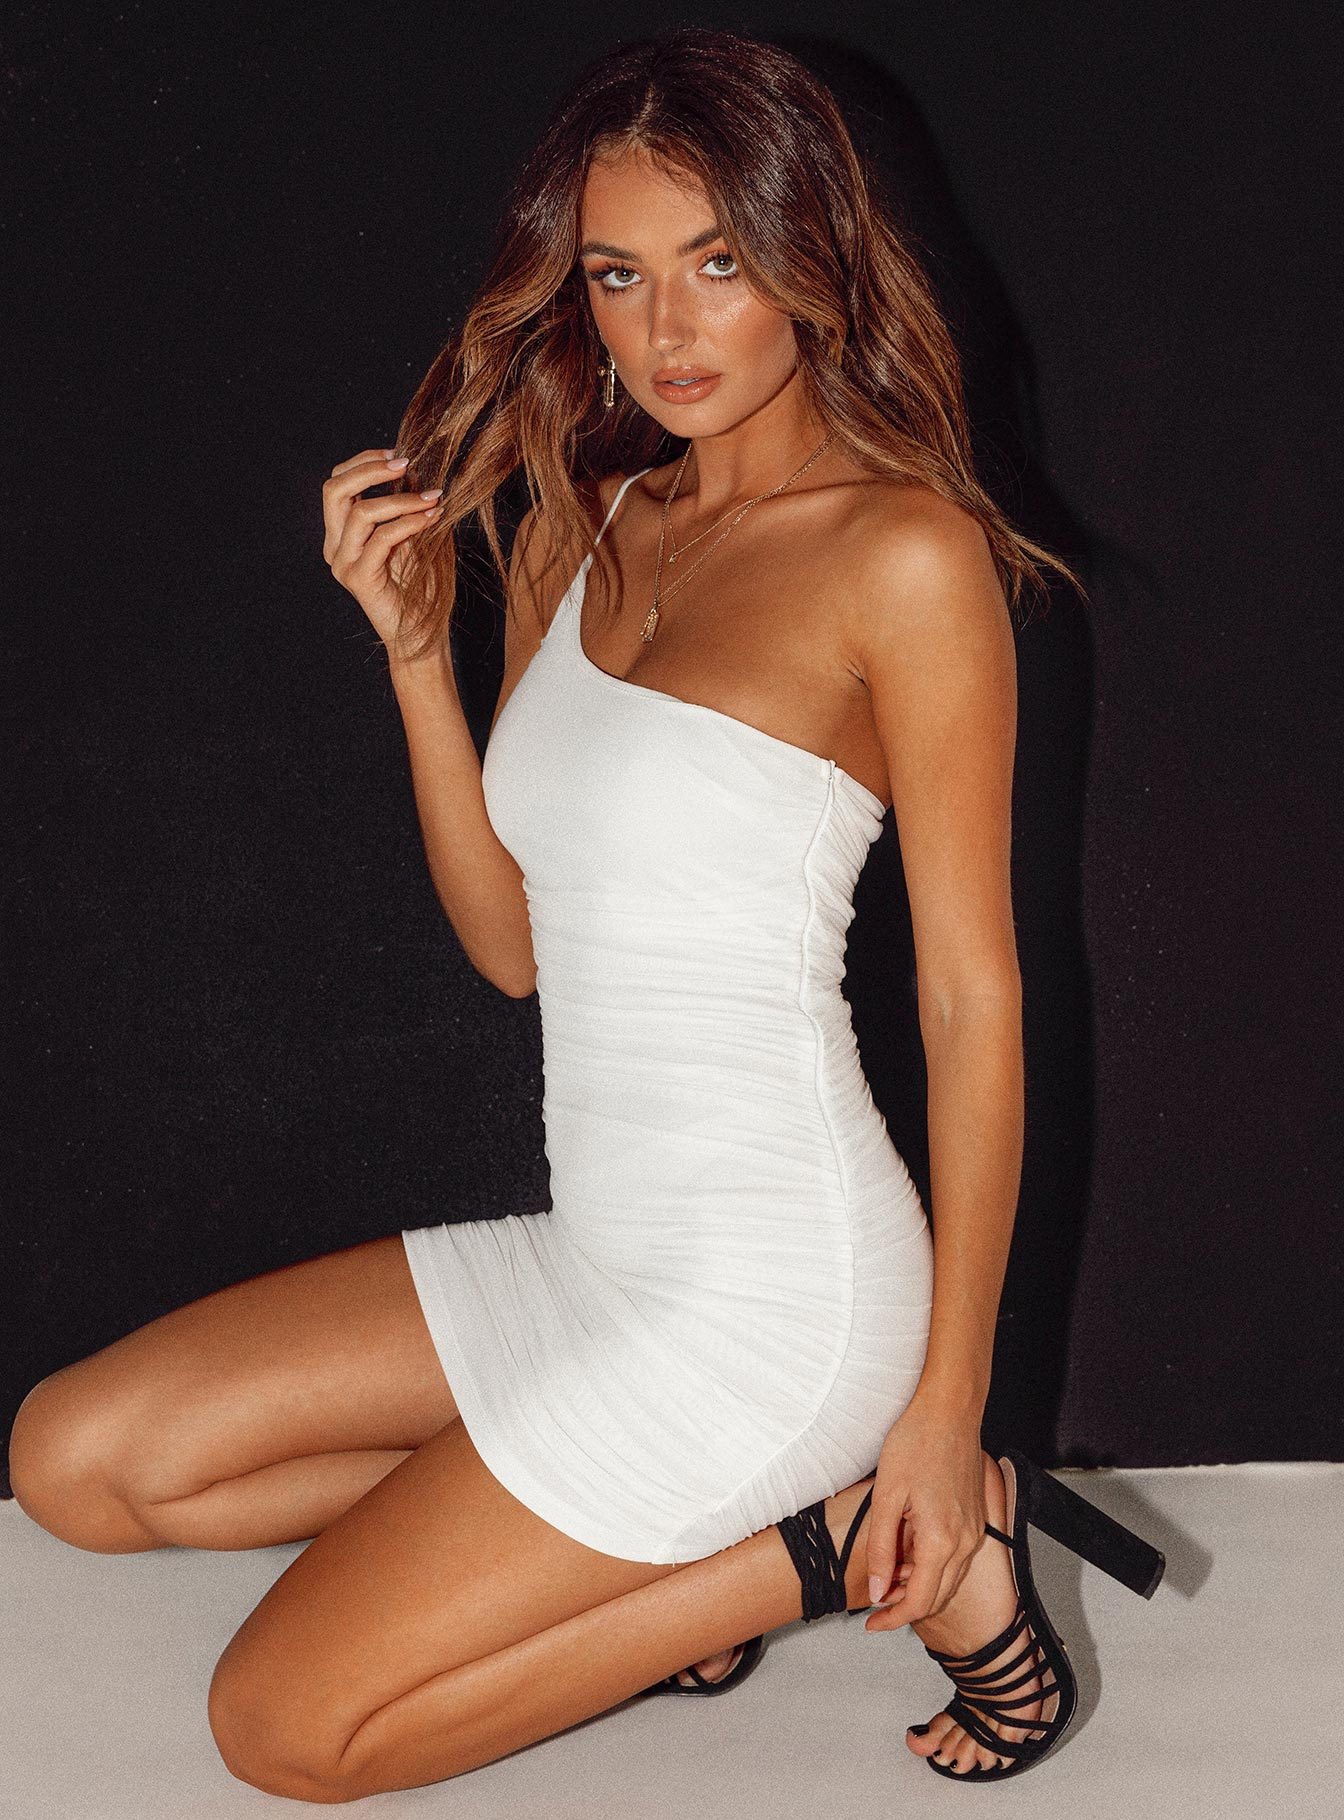 Jocasta Mini Dress